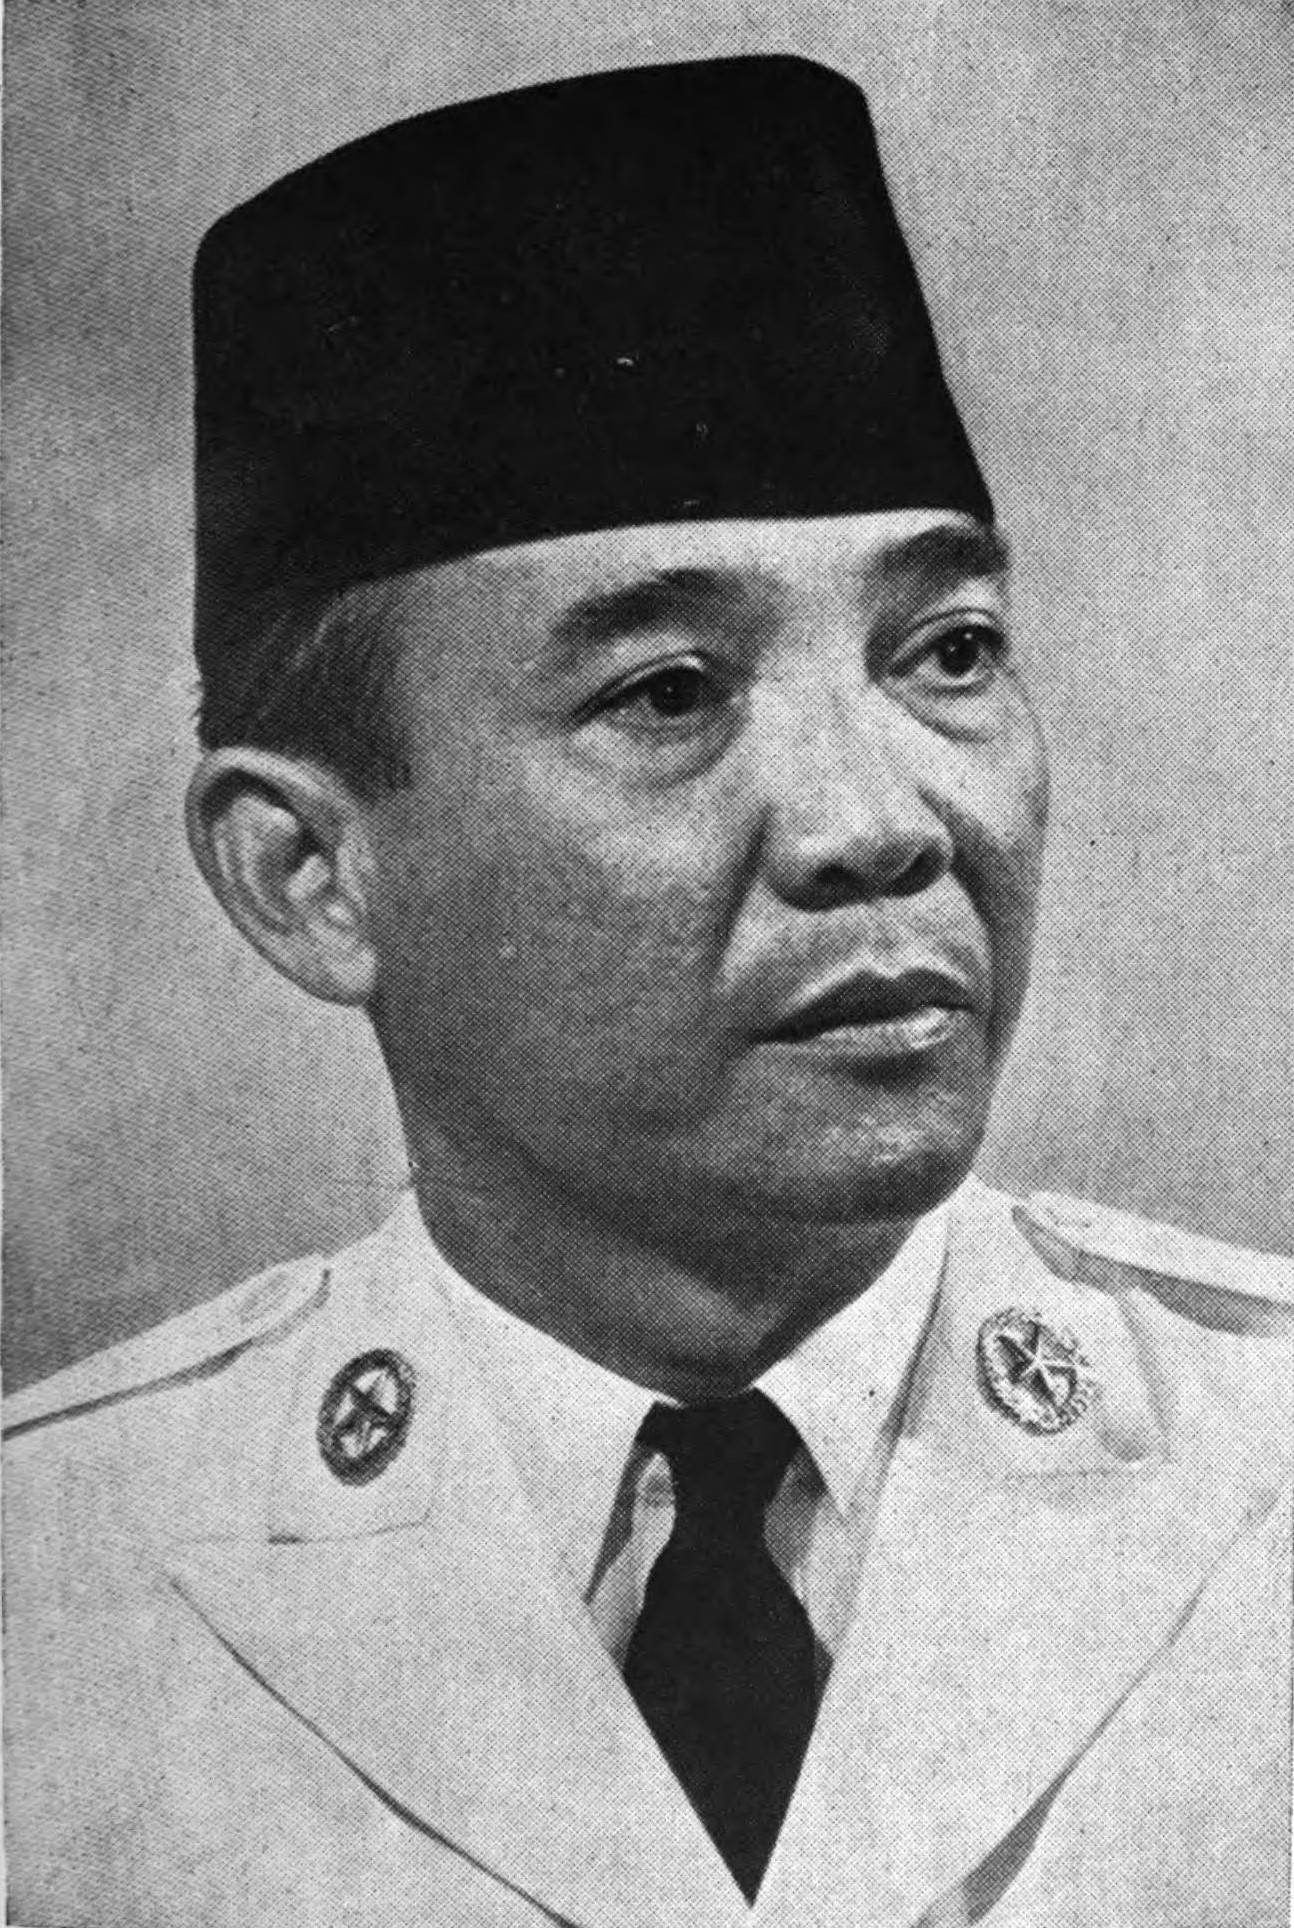 filedesc Source: This picture of Soekarno is a...